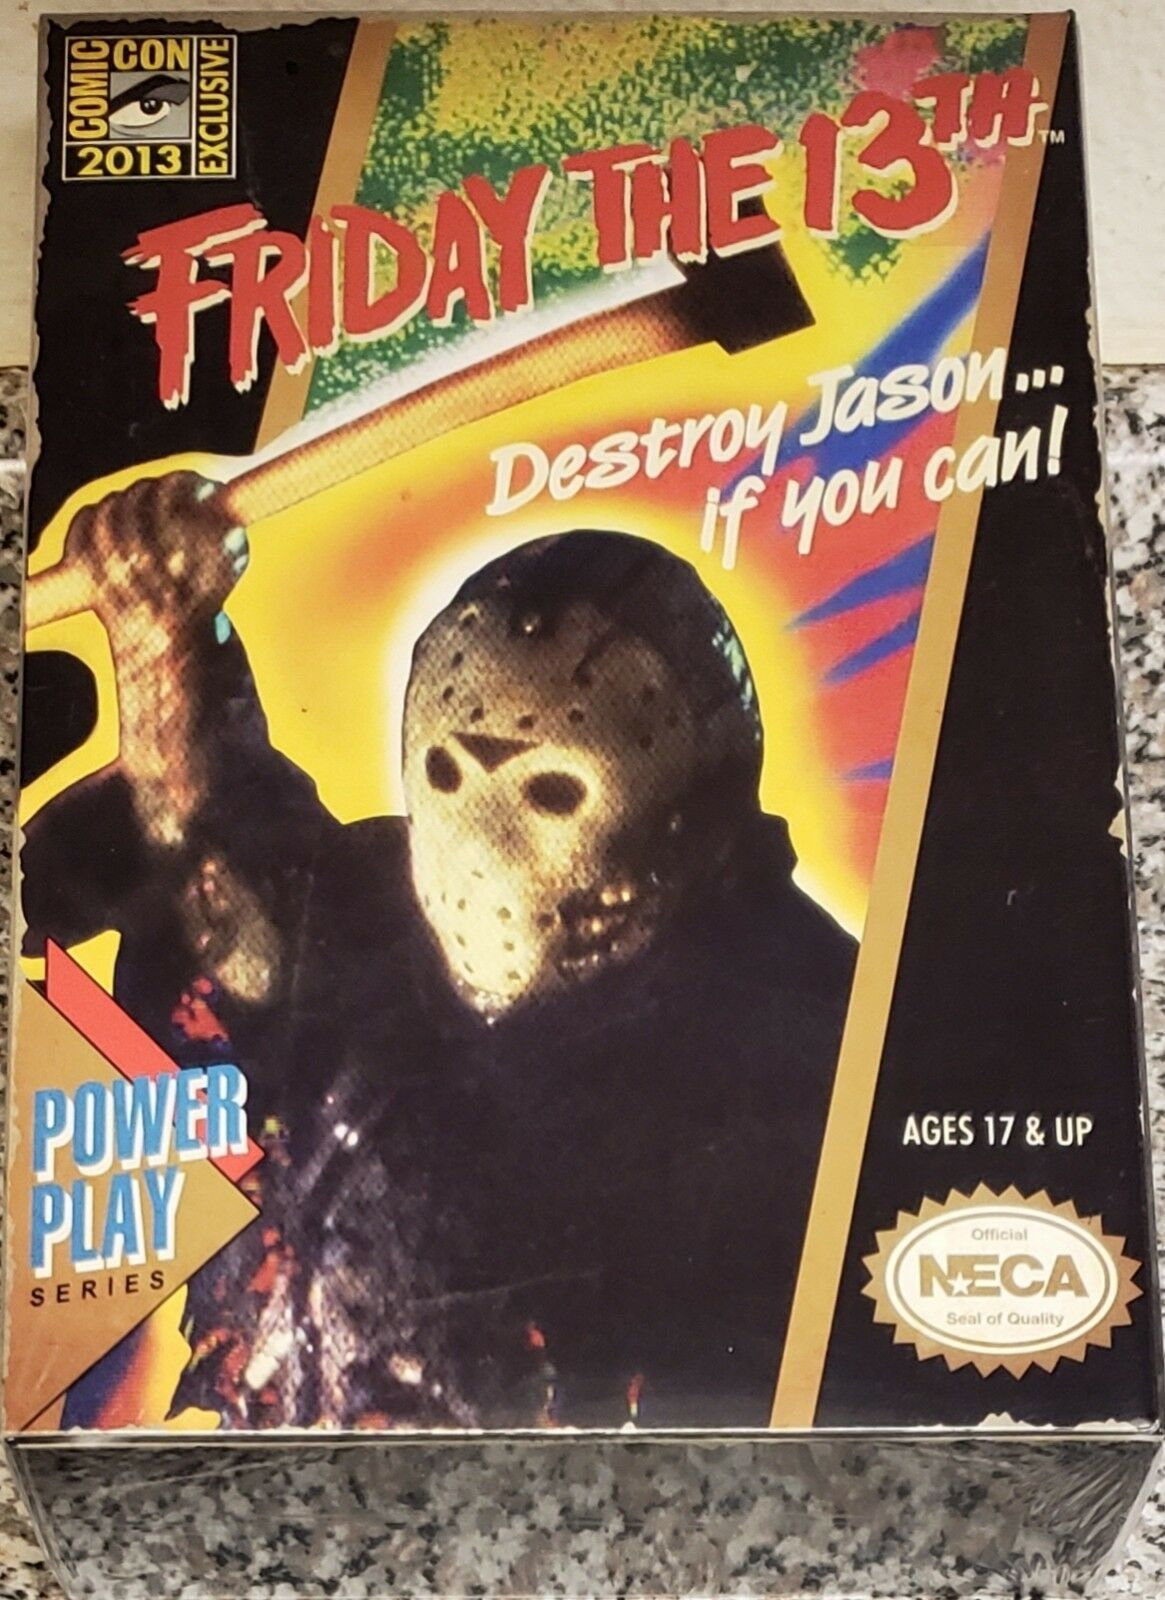 NECA 2013 SDCC EXCLUSIVE, FRIDAY THE 13TH JASON, POWER PLAY SERIES (NEW & RARE)